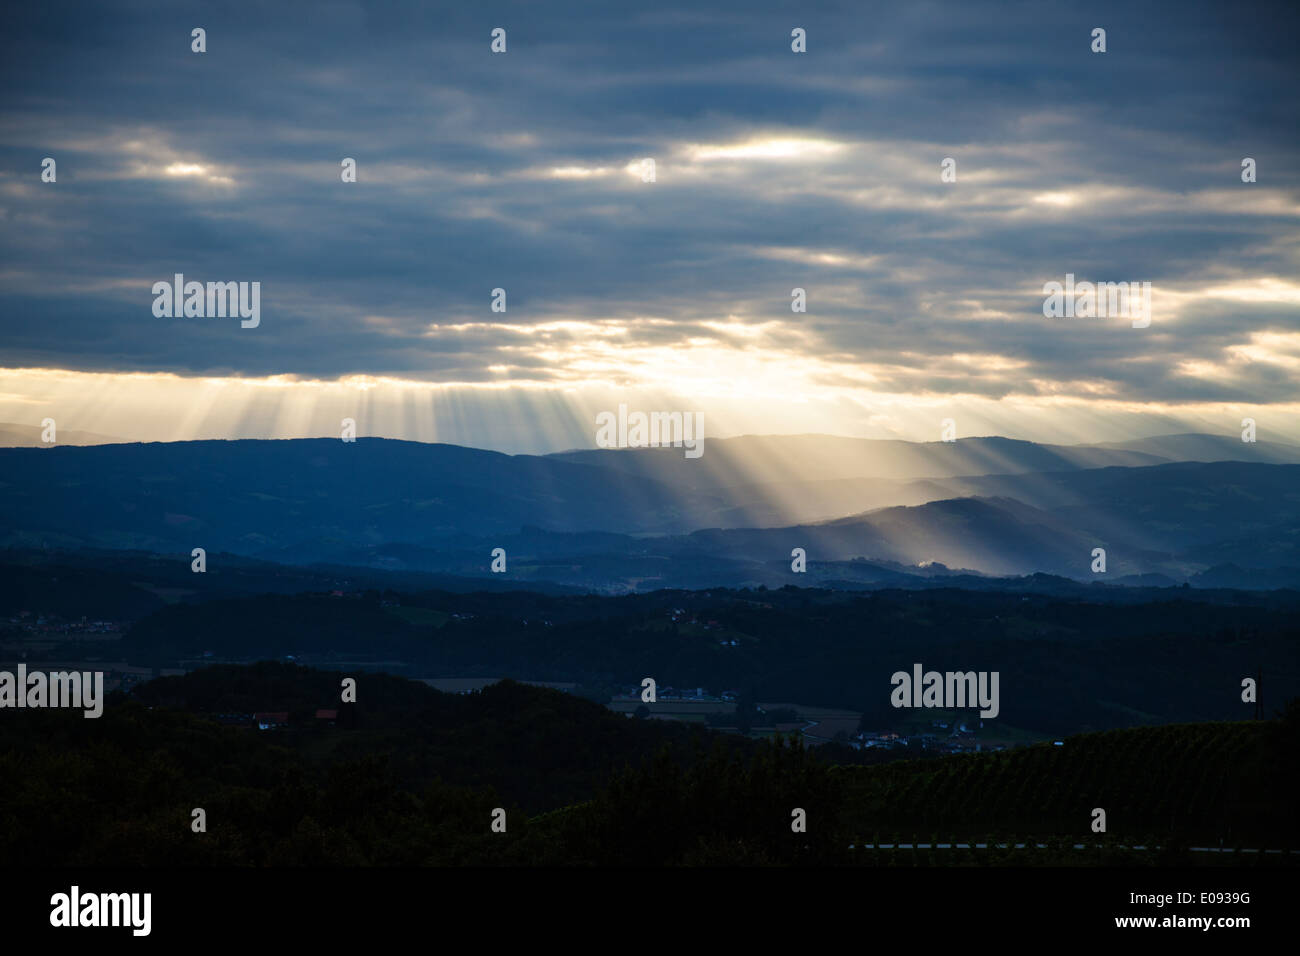 Sunrays break through the cloud cover about a mountain landscape, Sonnenstrahlen durchbrechen die Wolkendecke ueber Stock Photo